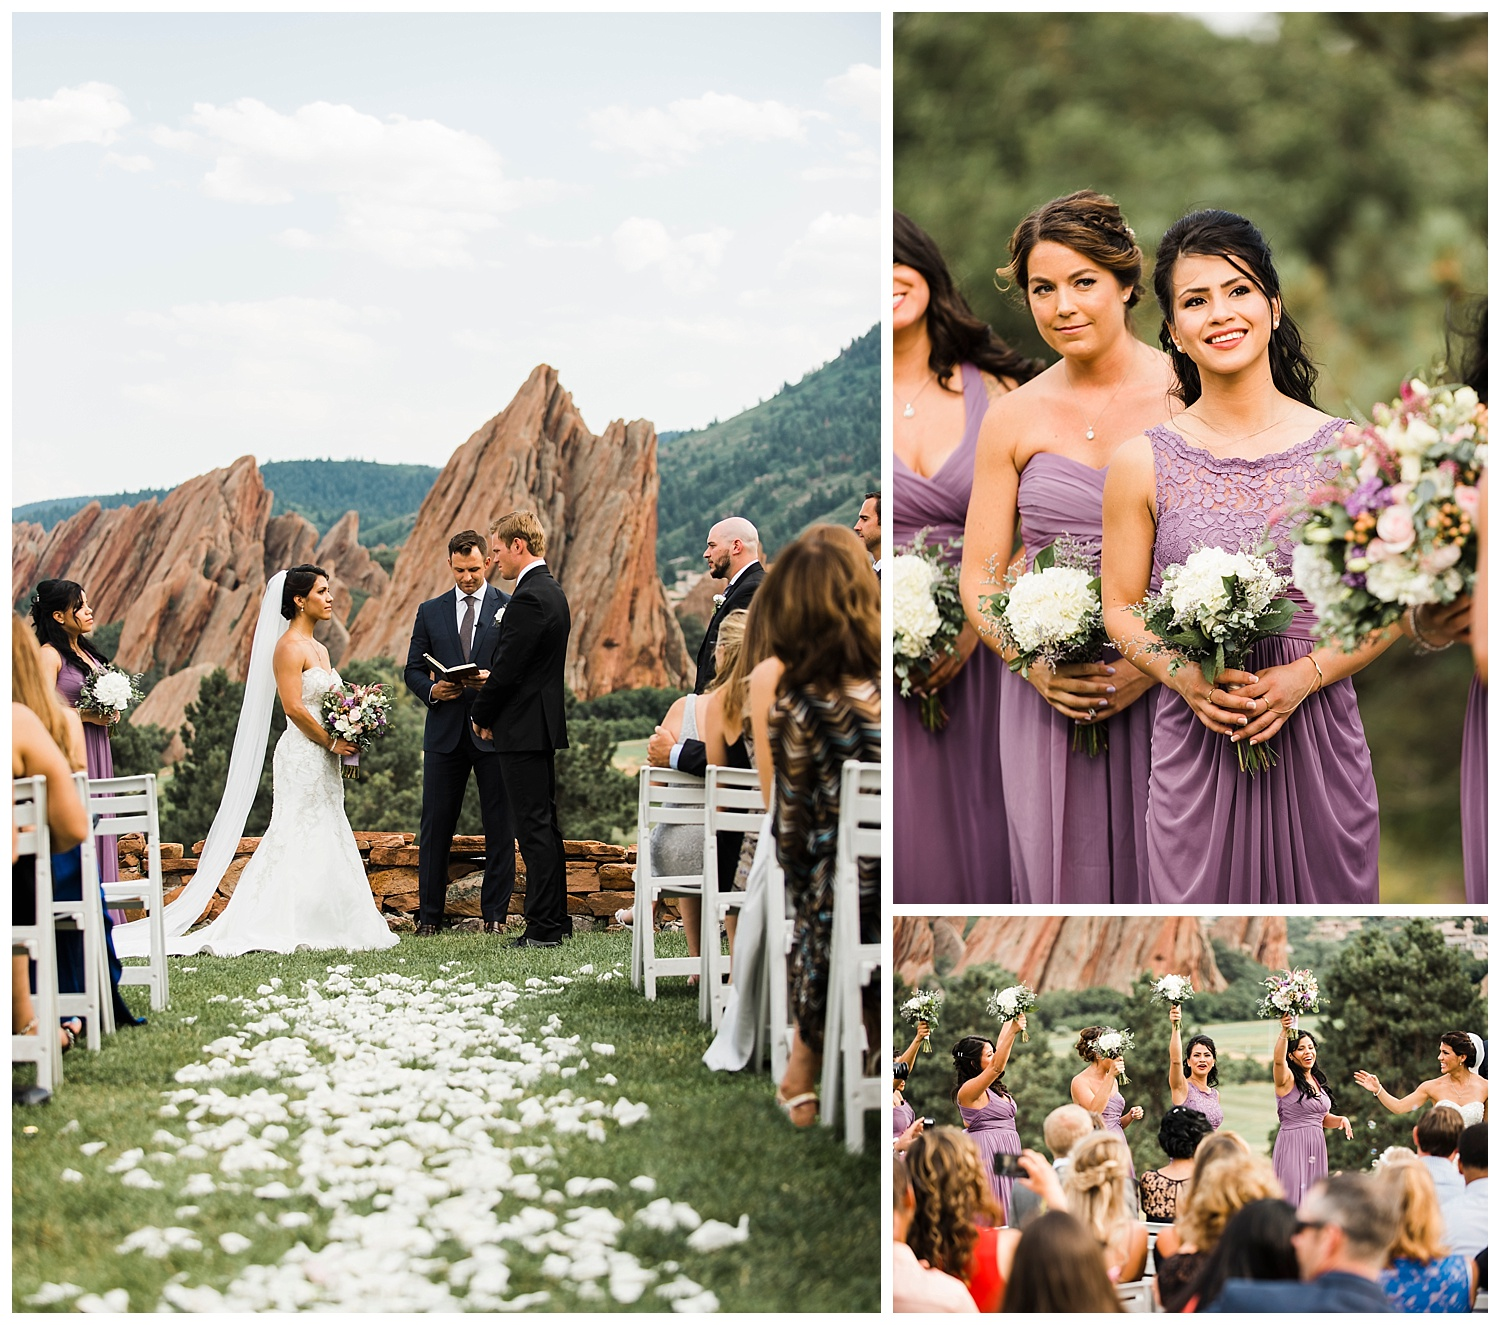 Arrowhead_Golf_Course_Wedding_Littleton_Colorado_Apollo_Fields_159.jpg